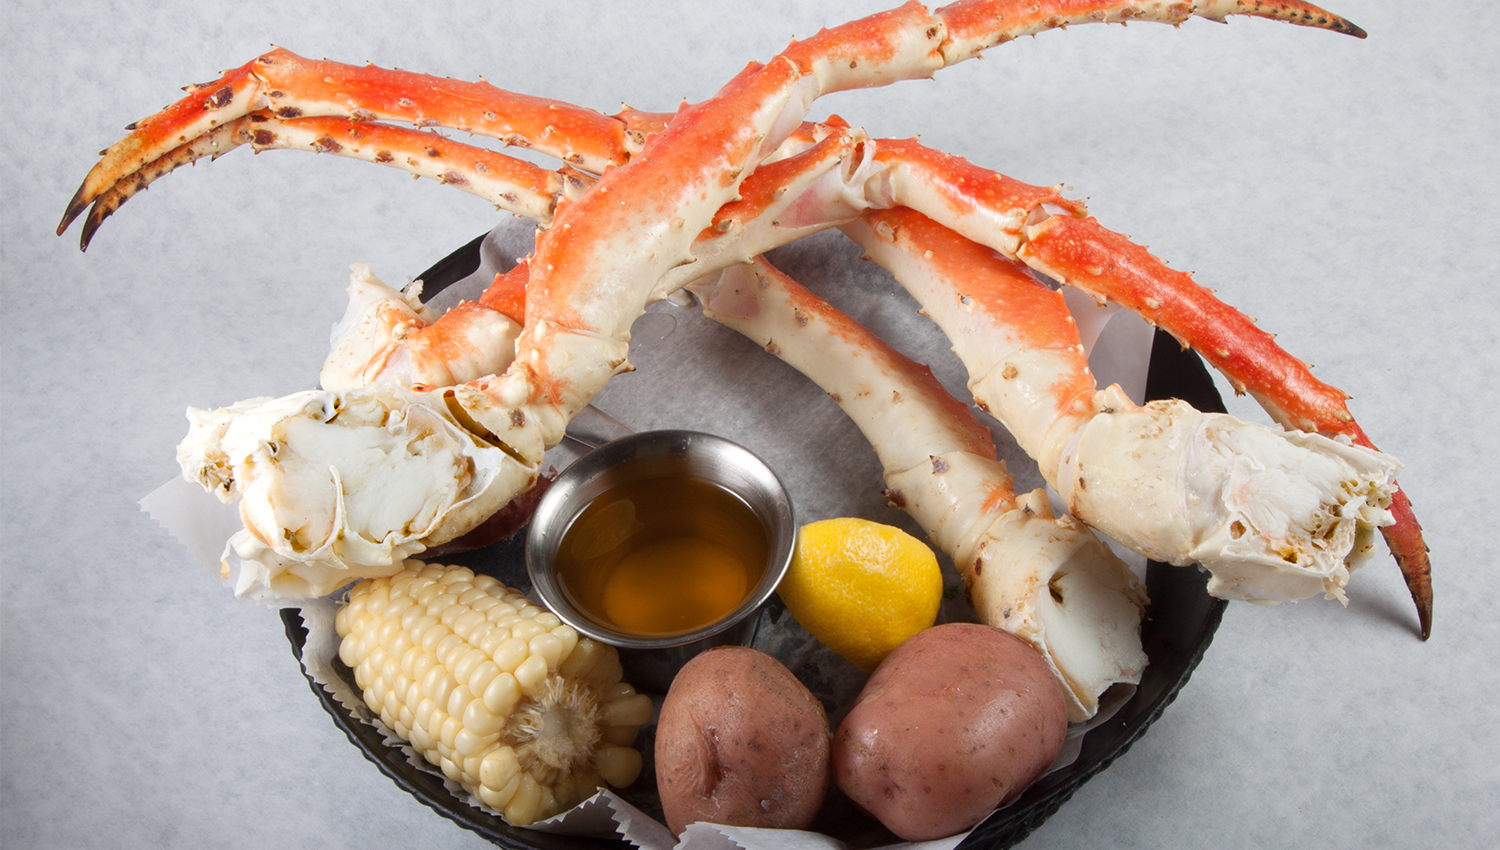 crab legs, corn on the cob, roasted potatoes, dipping sauce